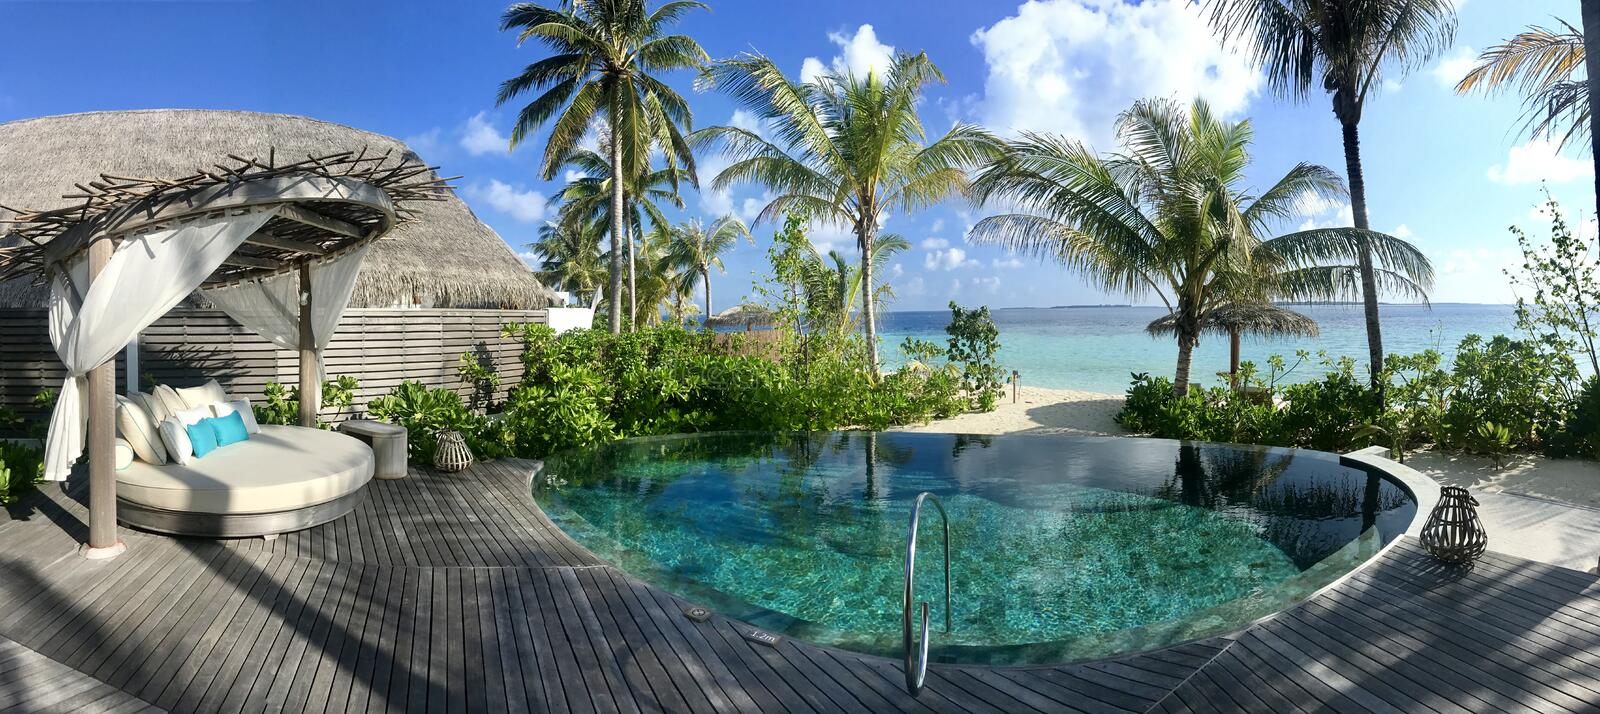 Maldives - Luxury Resort with private pools royalty free stock image